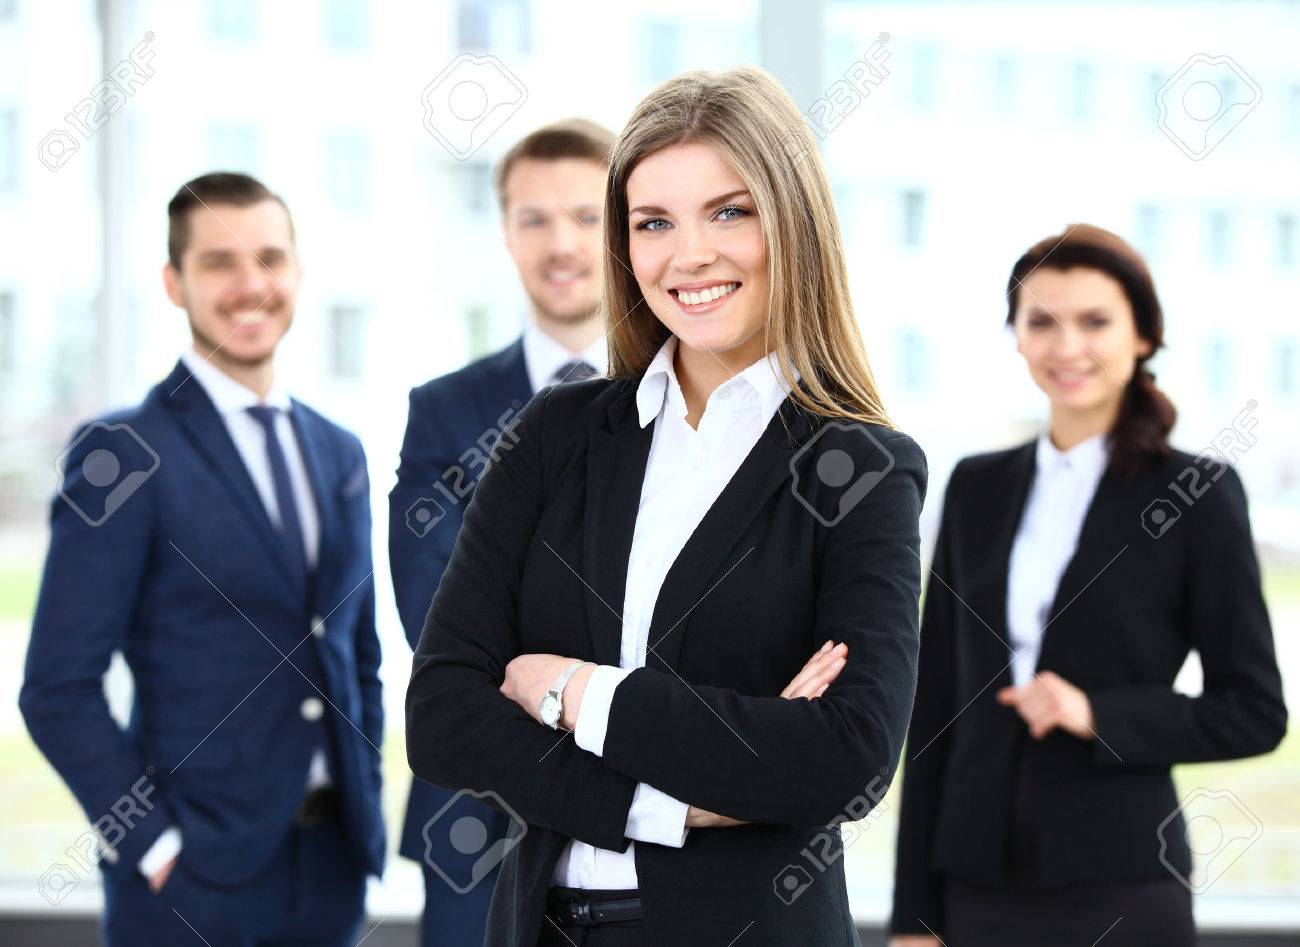 Face of beautiful woman on the background of business people - 40001858